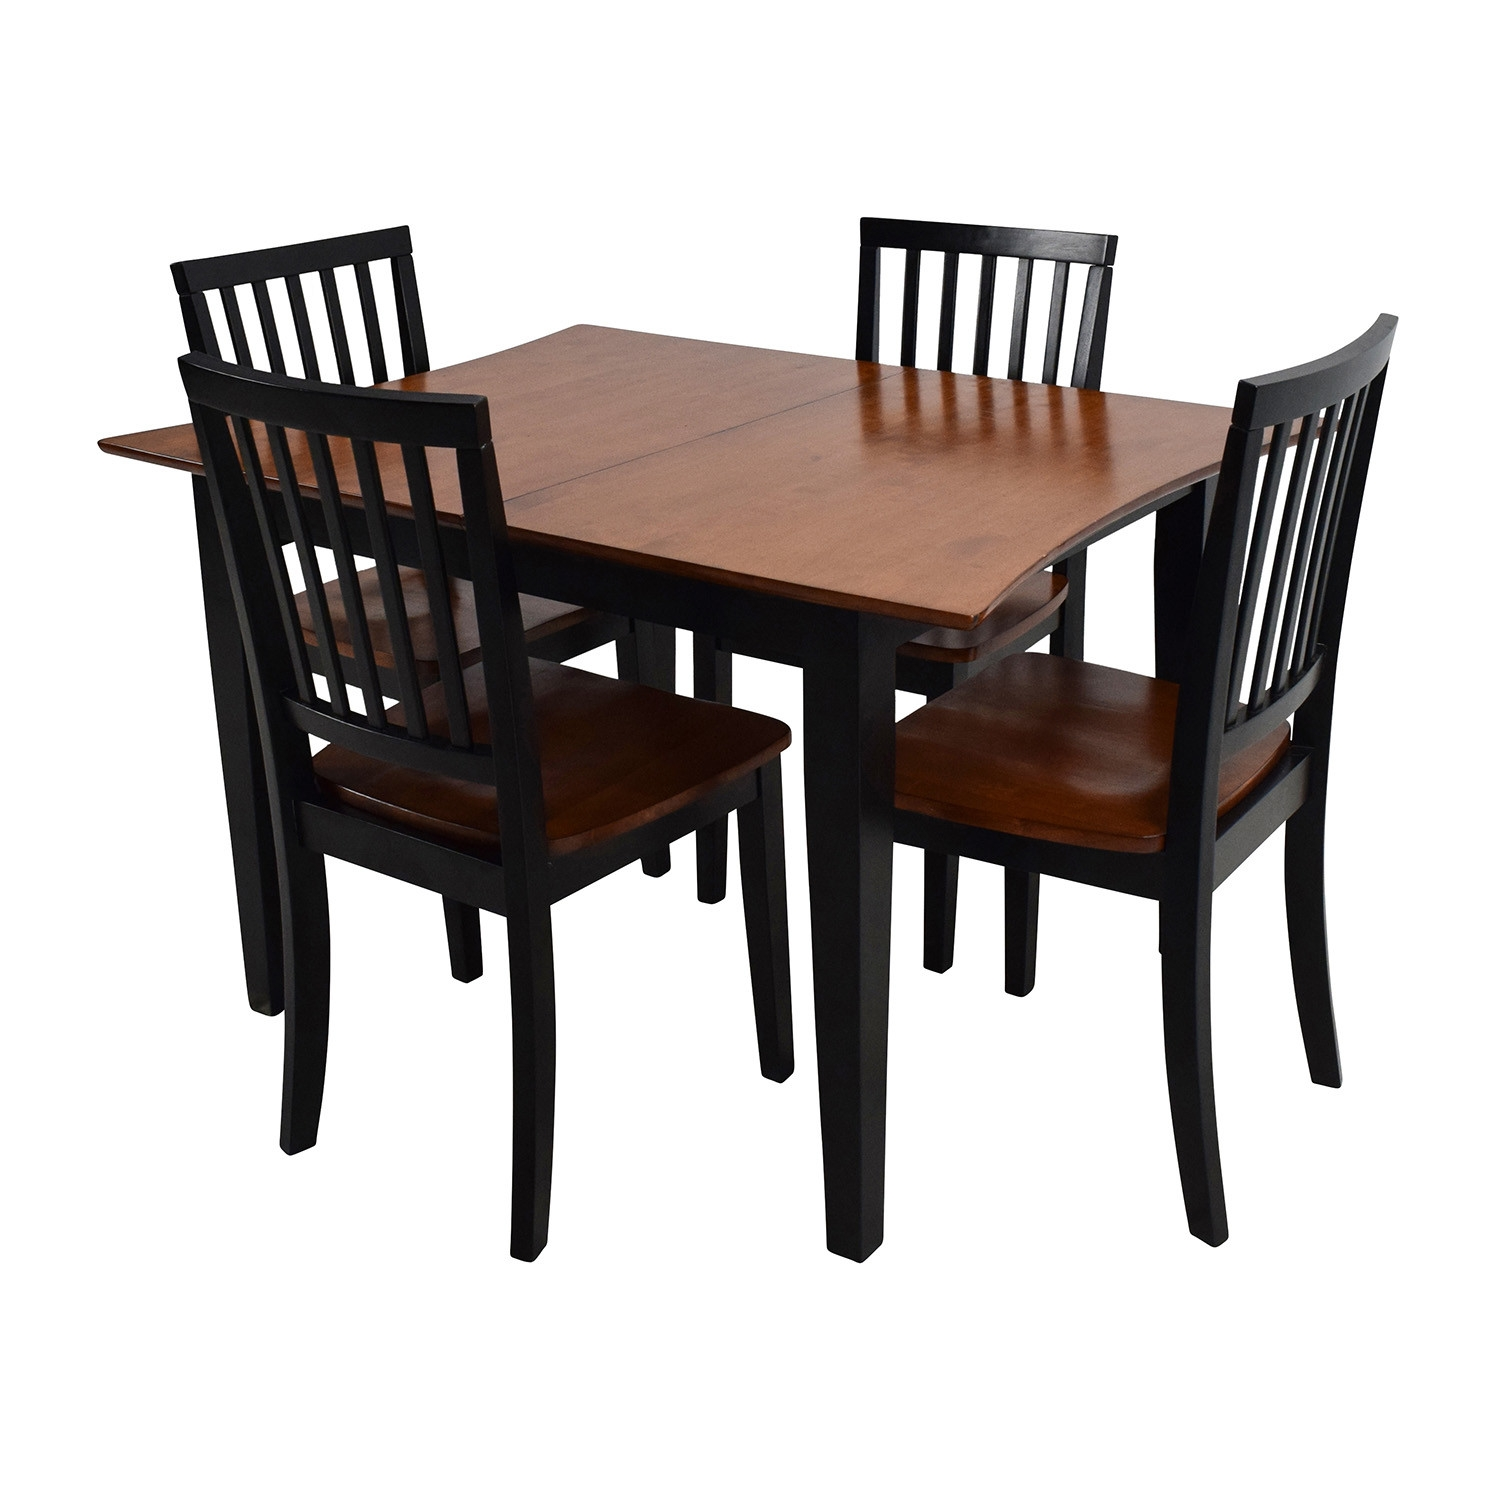 Dining Room Bobs Matrix Dining Room Set Bob Mackie Sets Timberlake